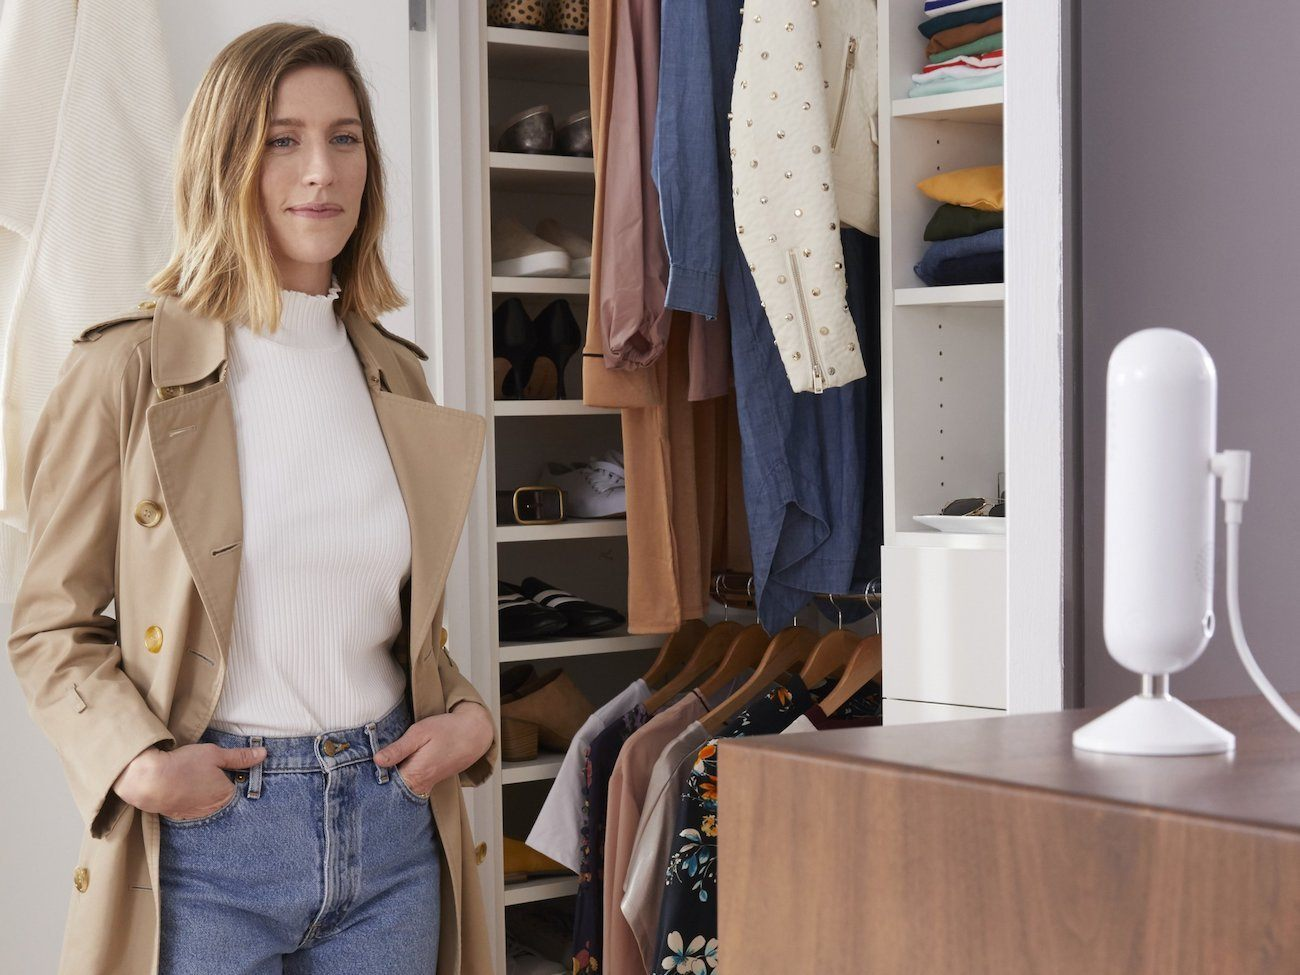 Echo Look Is Your Intelligent Fashion Guide